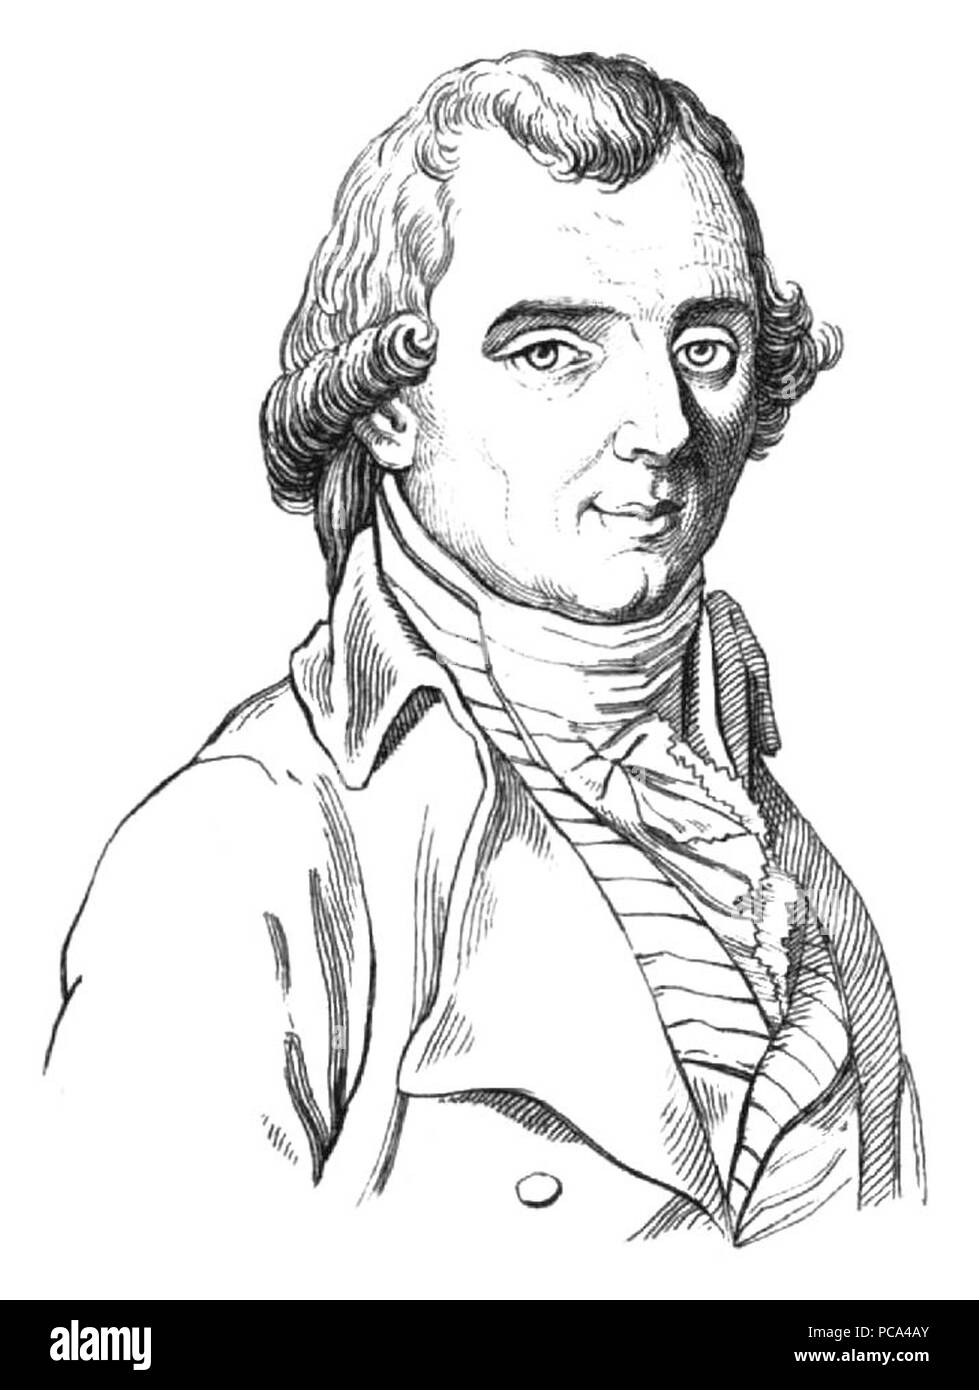 . Heinrich Wilhelm Matthäus Olbers (October 11, 1758 – March 2, 1840) was a German astronomer, physician and physicist. 270 Heinrich Wilhelm Olbers Stock Photo